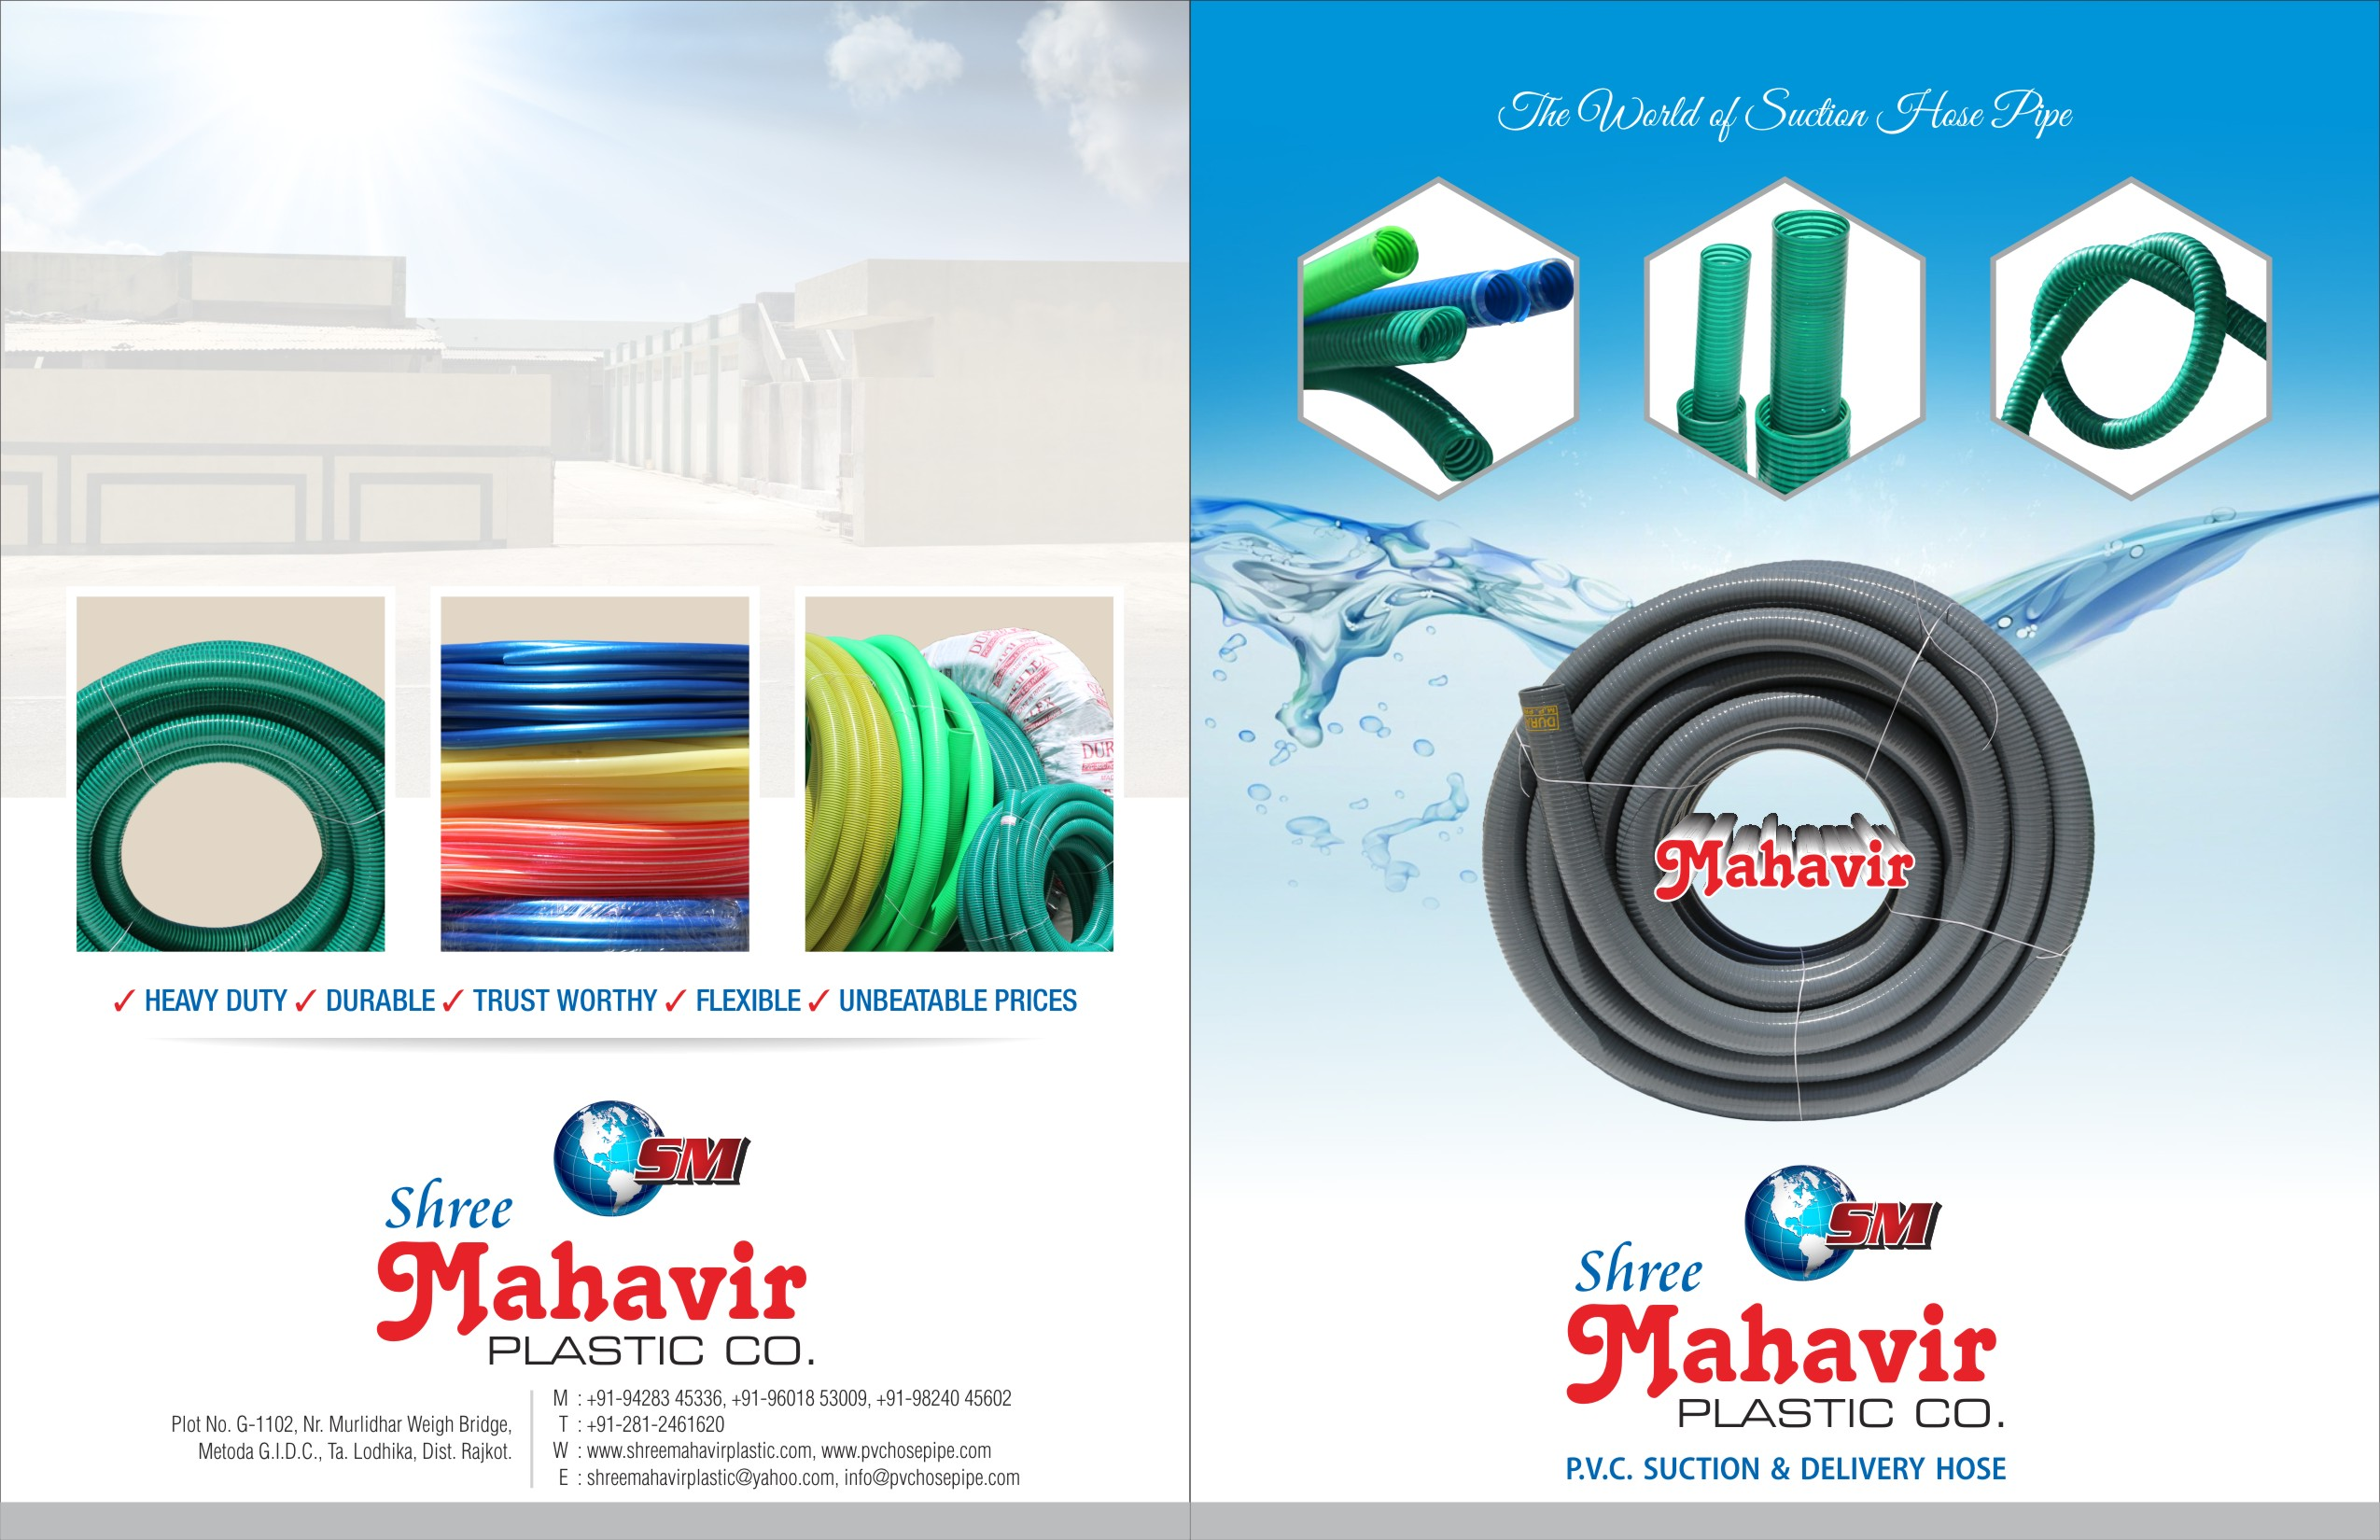 Shree Mahavir Plastics Electrical Conduit Flexible Manufacturers Our Products Garden Pipes Lay Flat Hose Pipe